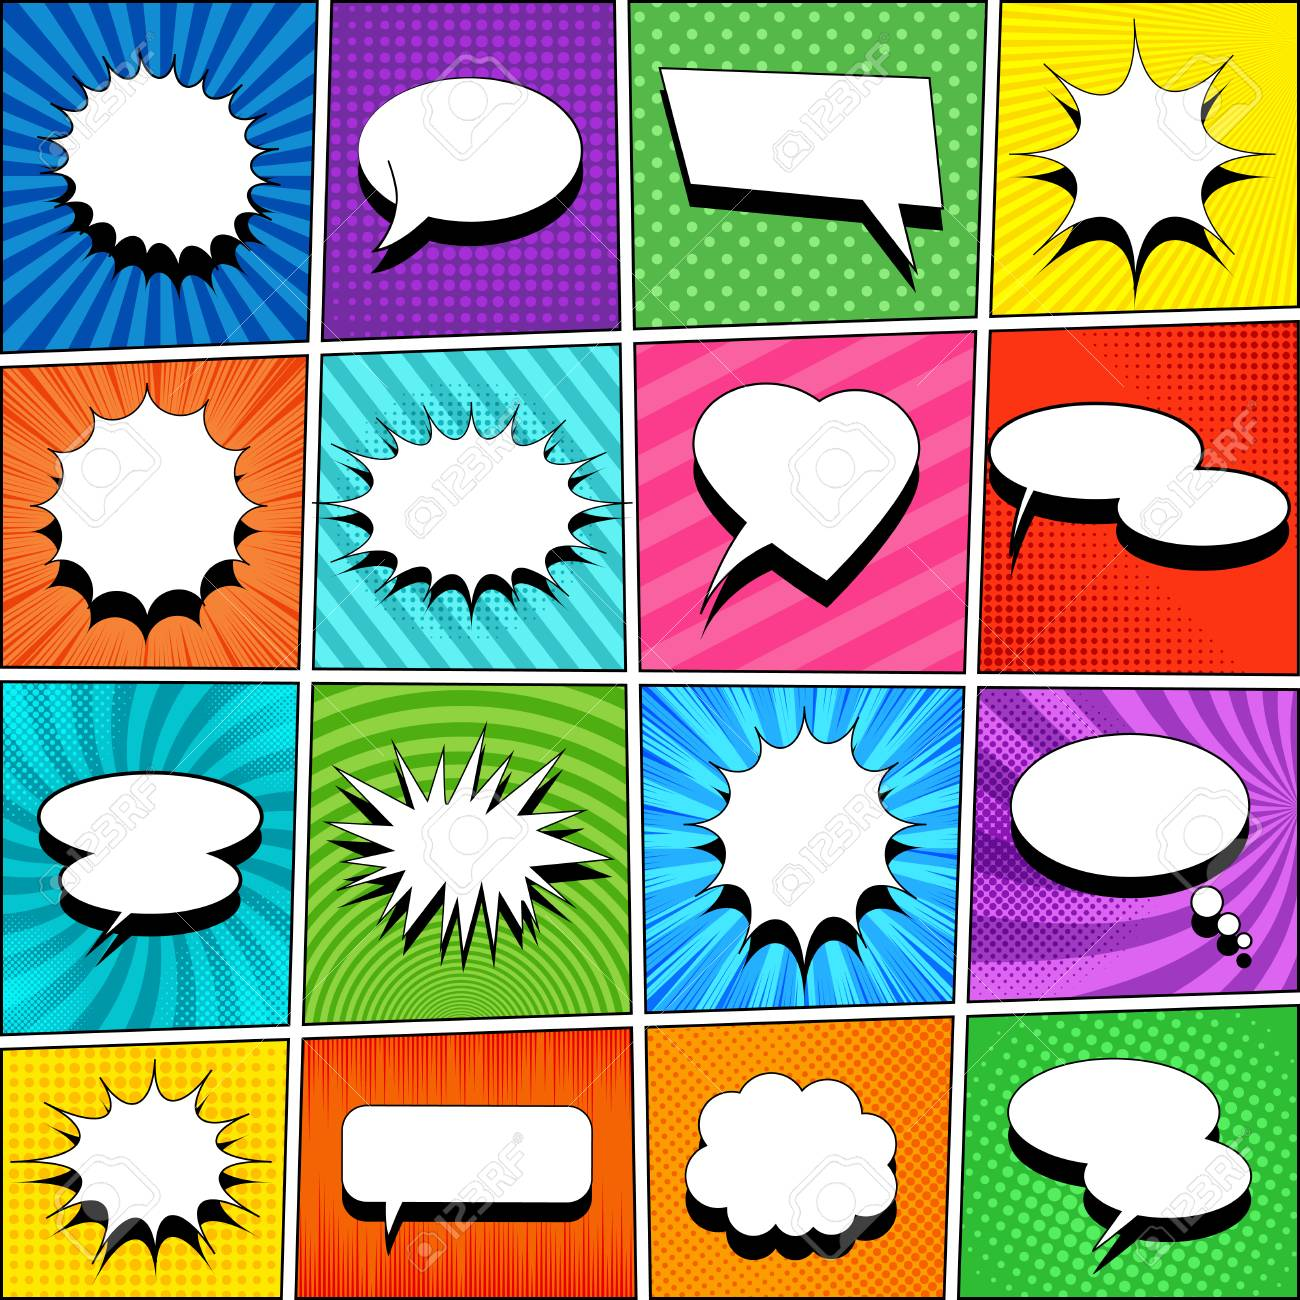 Comic Book Template With White Blank Speech Bubbles Of Different